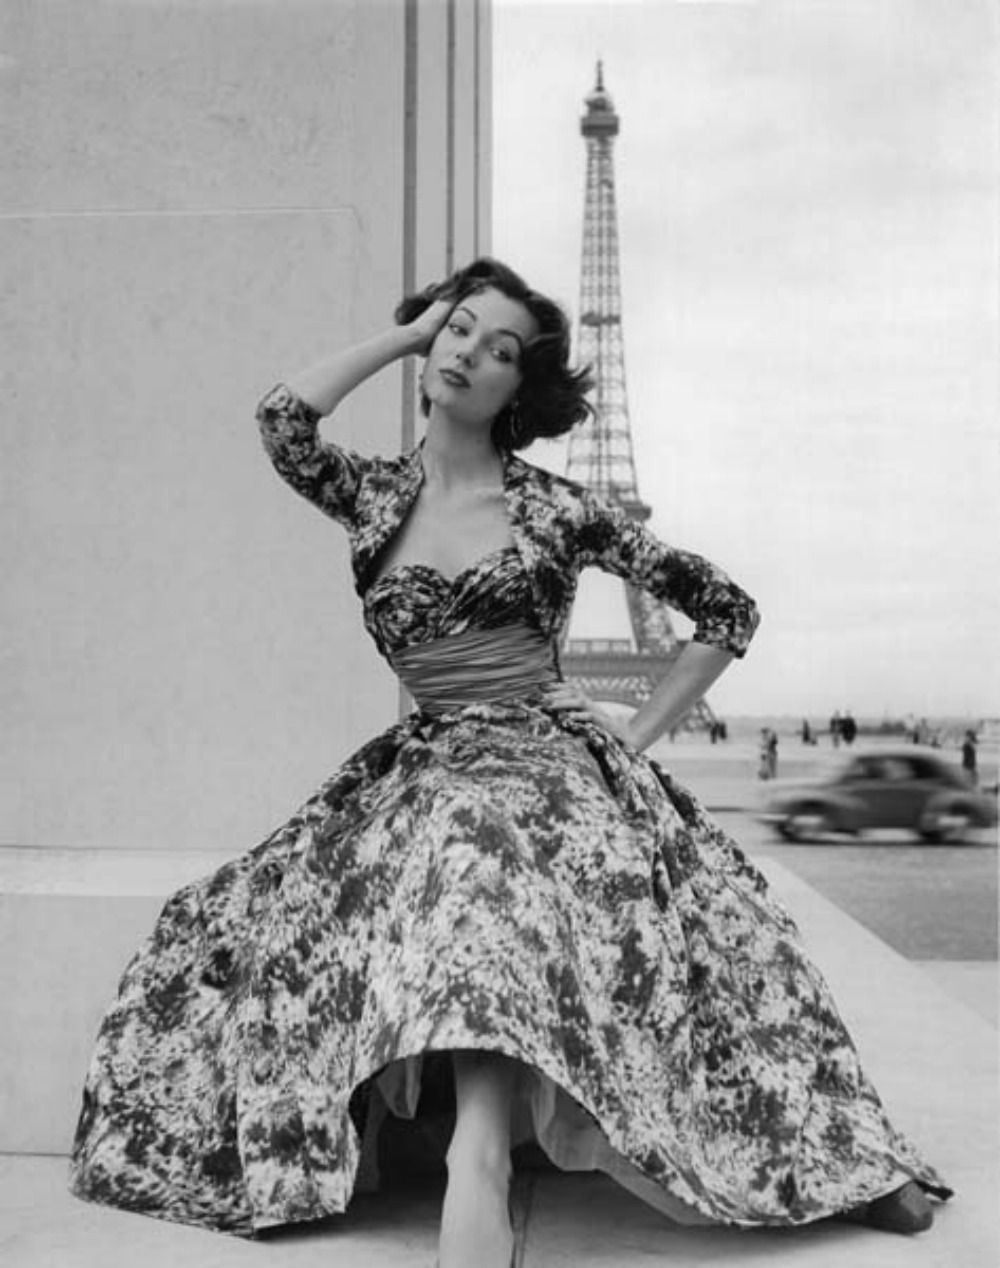 1953, Paris . Model Ivy Nicholson. Photo by Willy Maywald (1907-D1985)